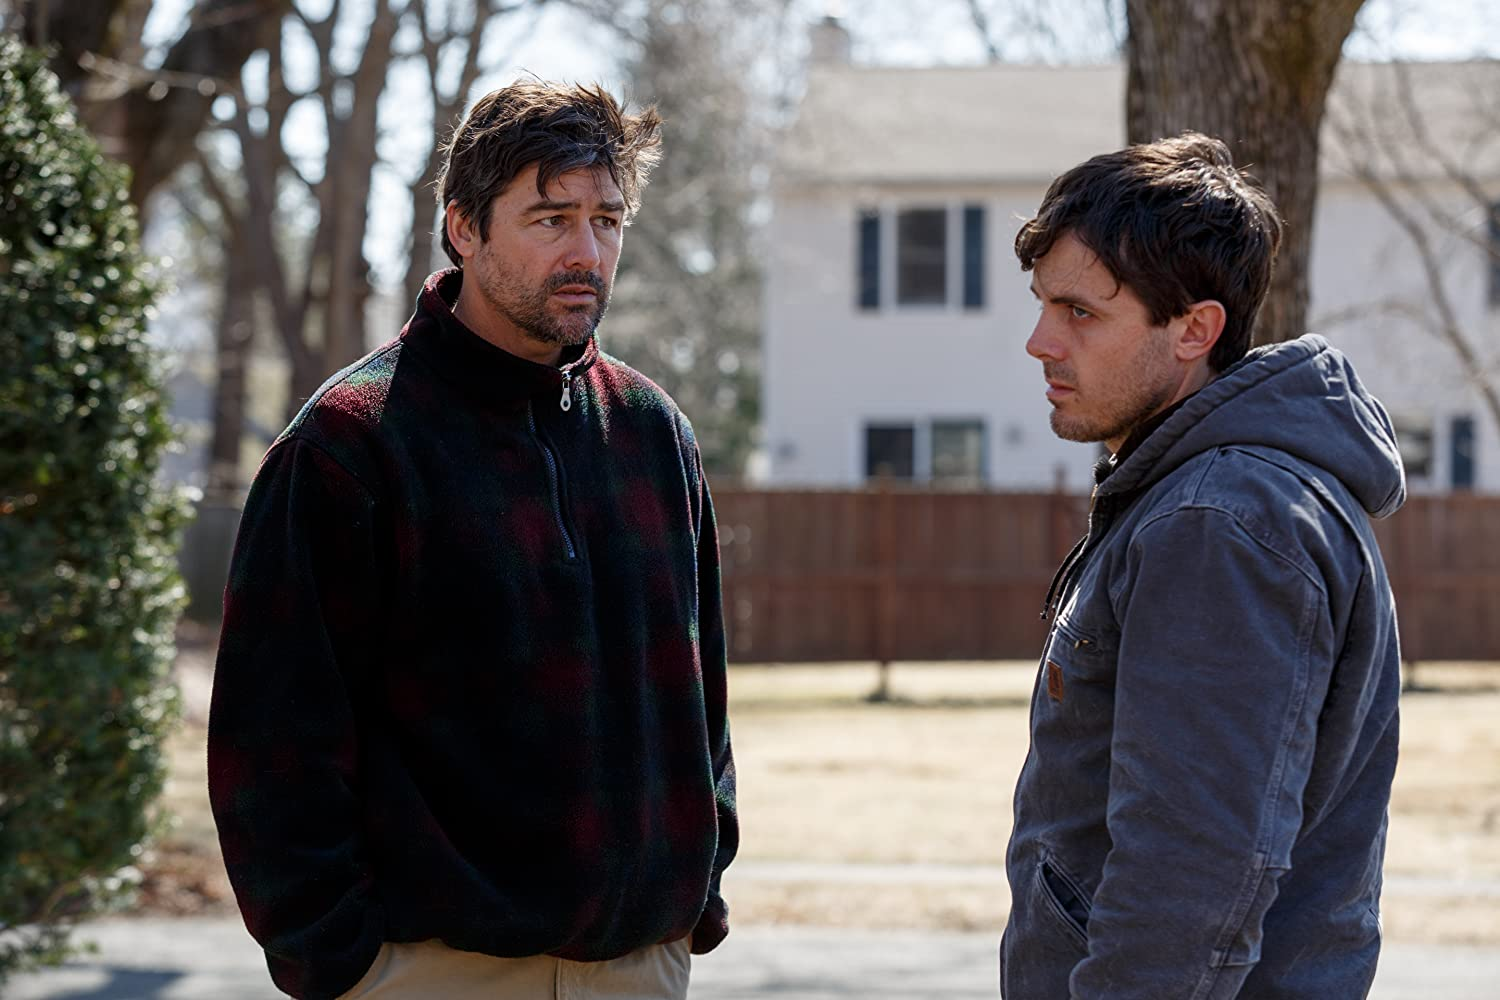 Casey Affleck and Kyle Chandler in Manchester by the Sea (2016)